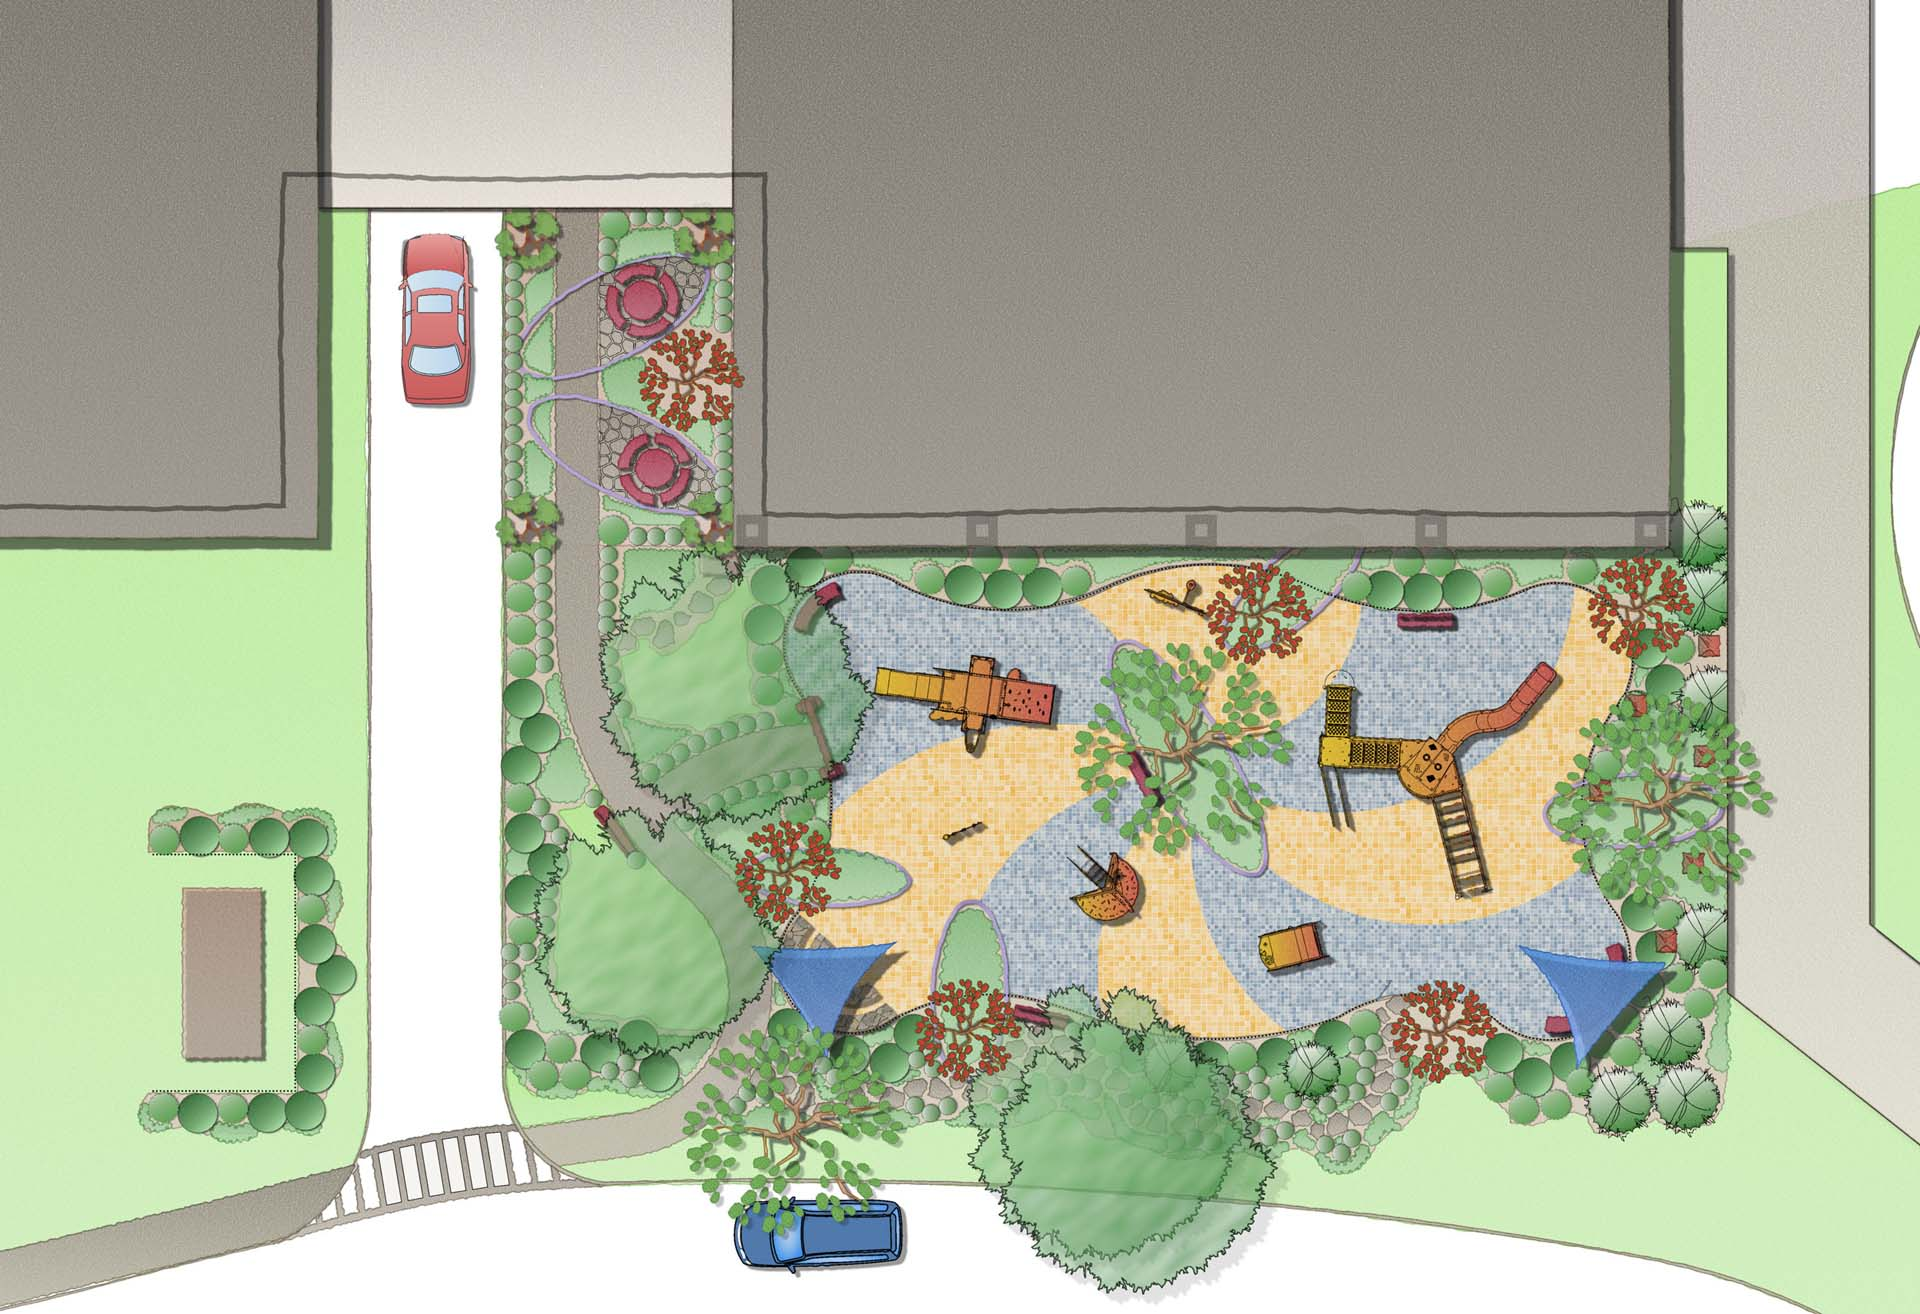 Playground Design Sean Jancski Landscape Architects